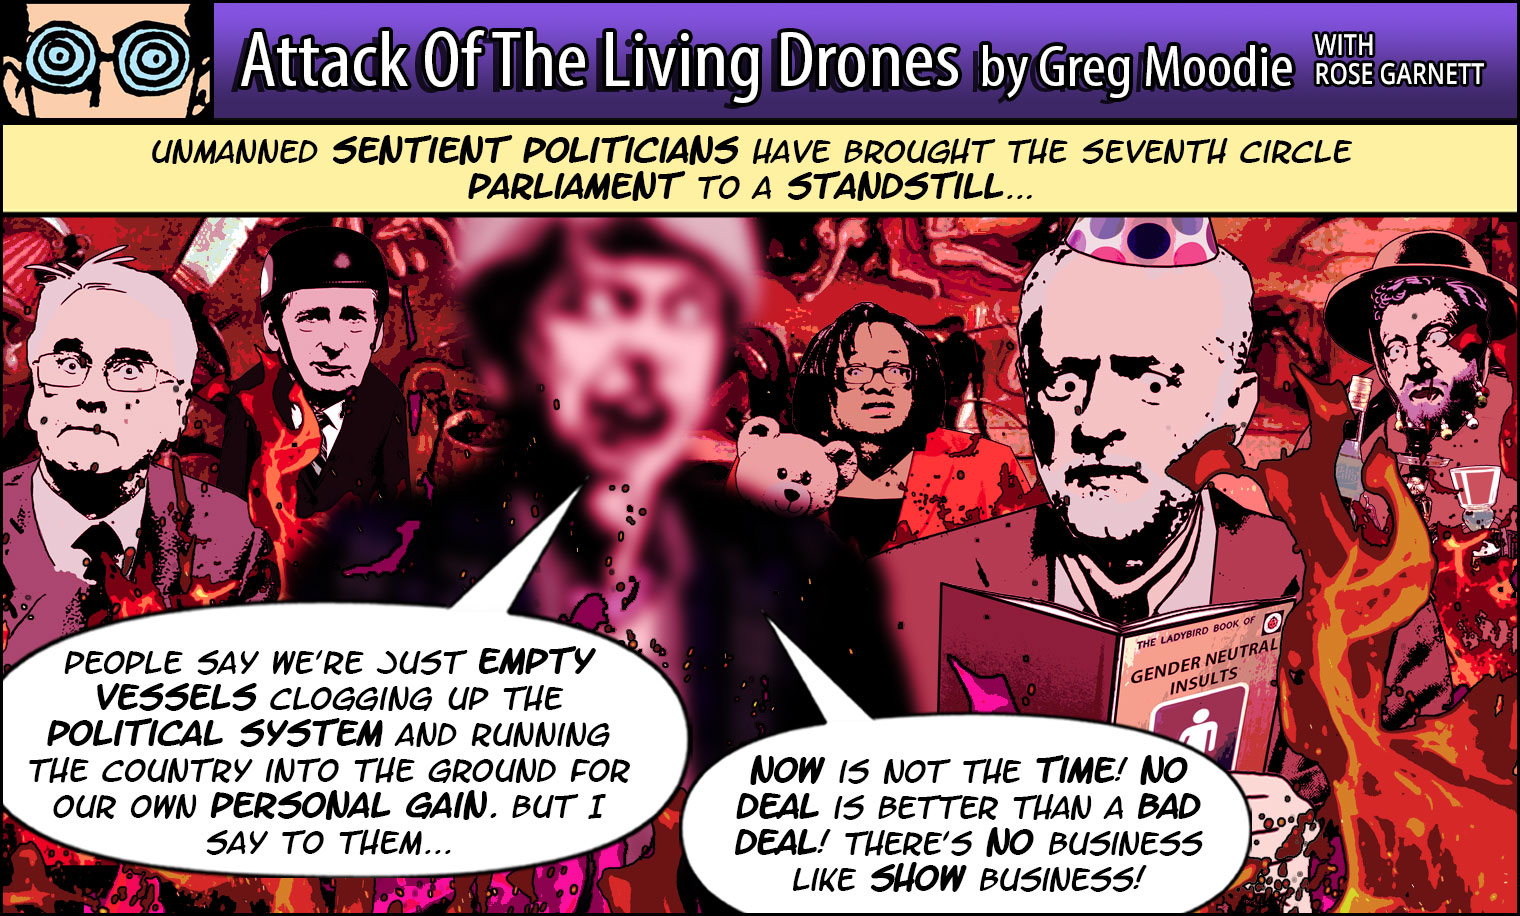 Attack Of The Living Drones